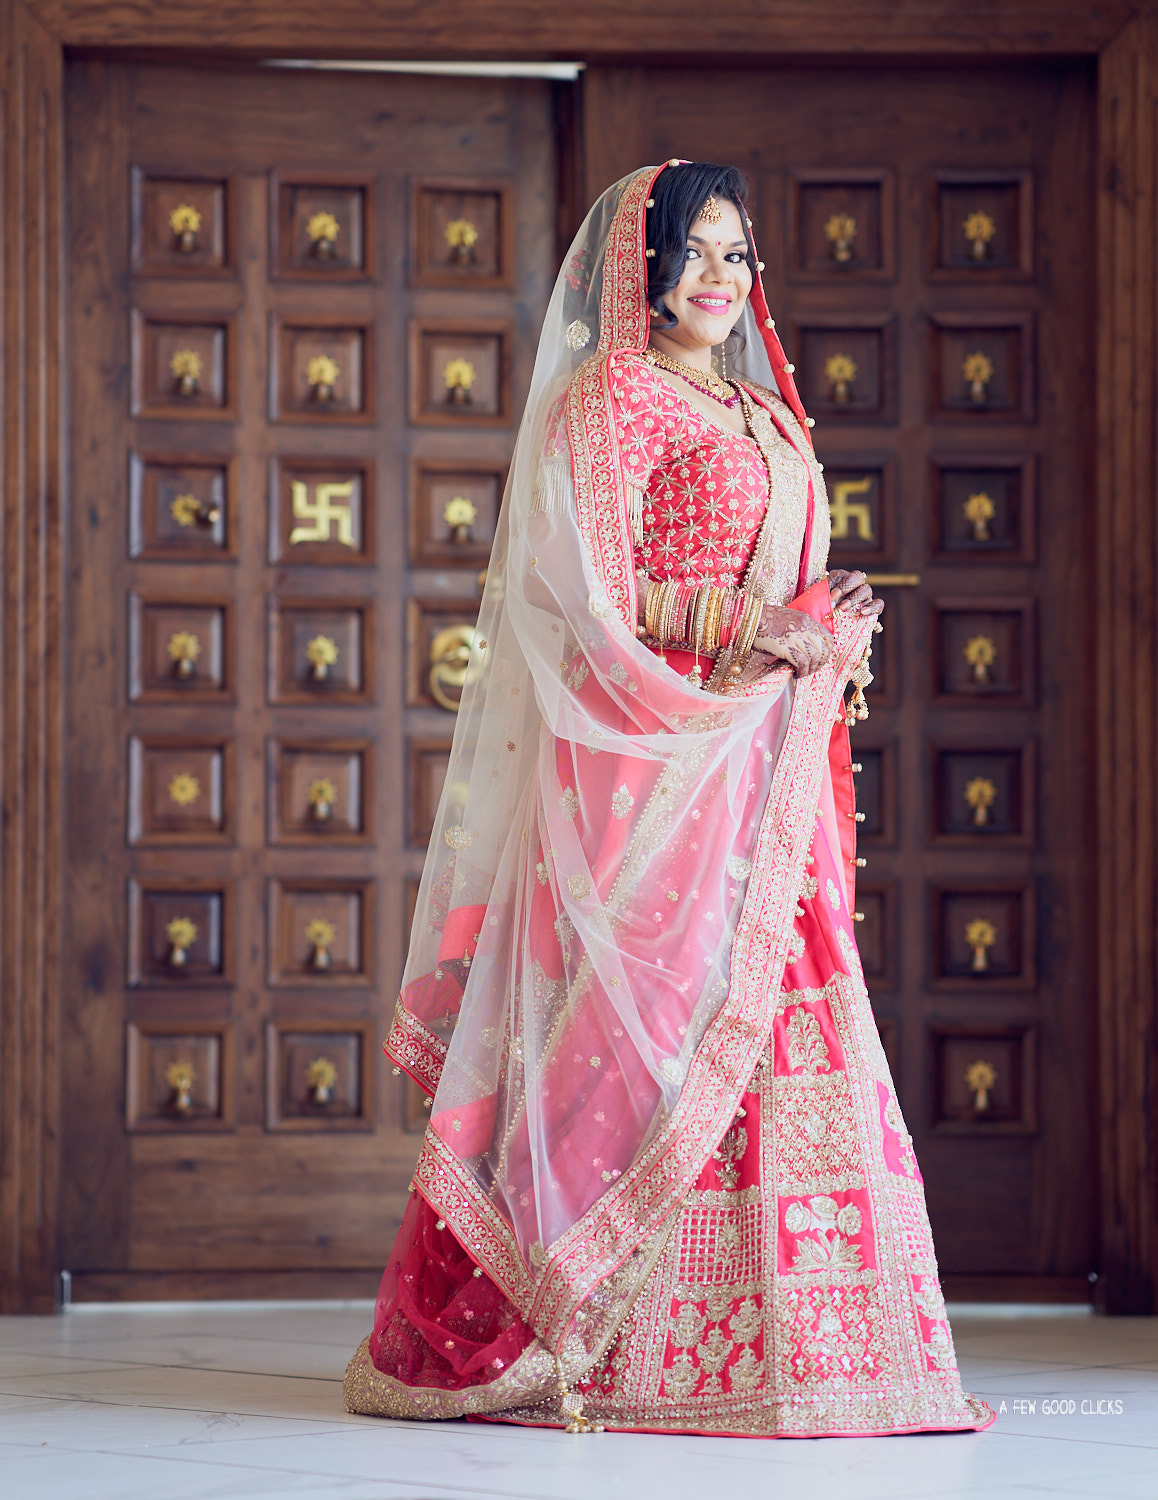 indian-bride-wedding-photography-at-sunnyvale-hindu-temple-ca 36.jpg